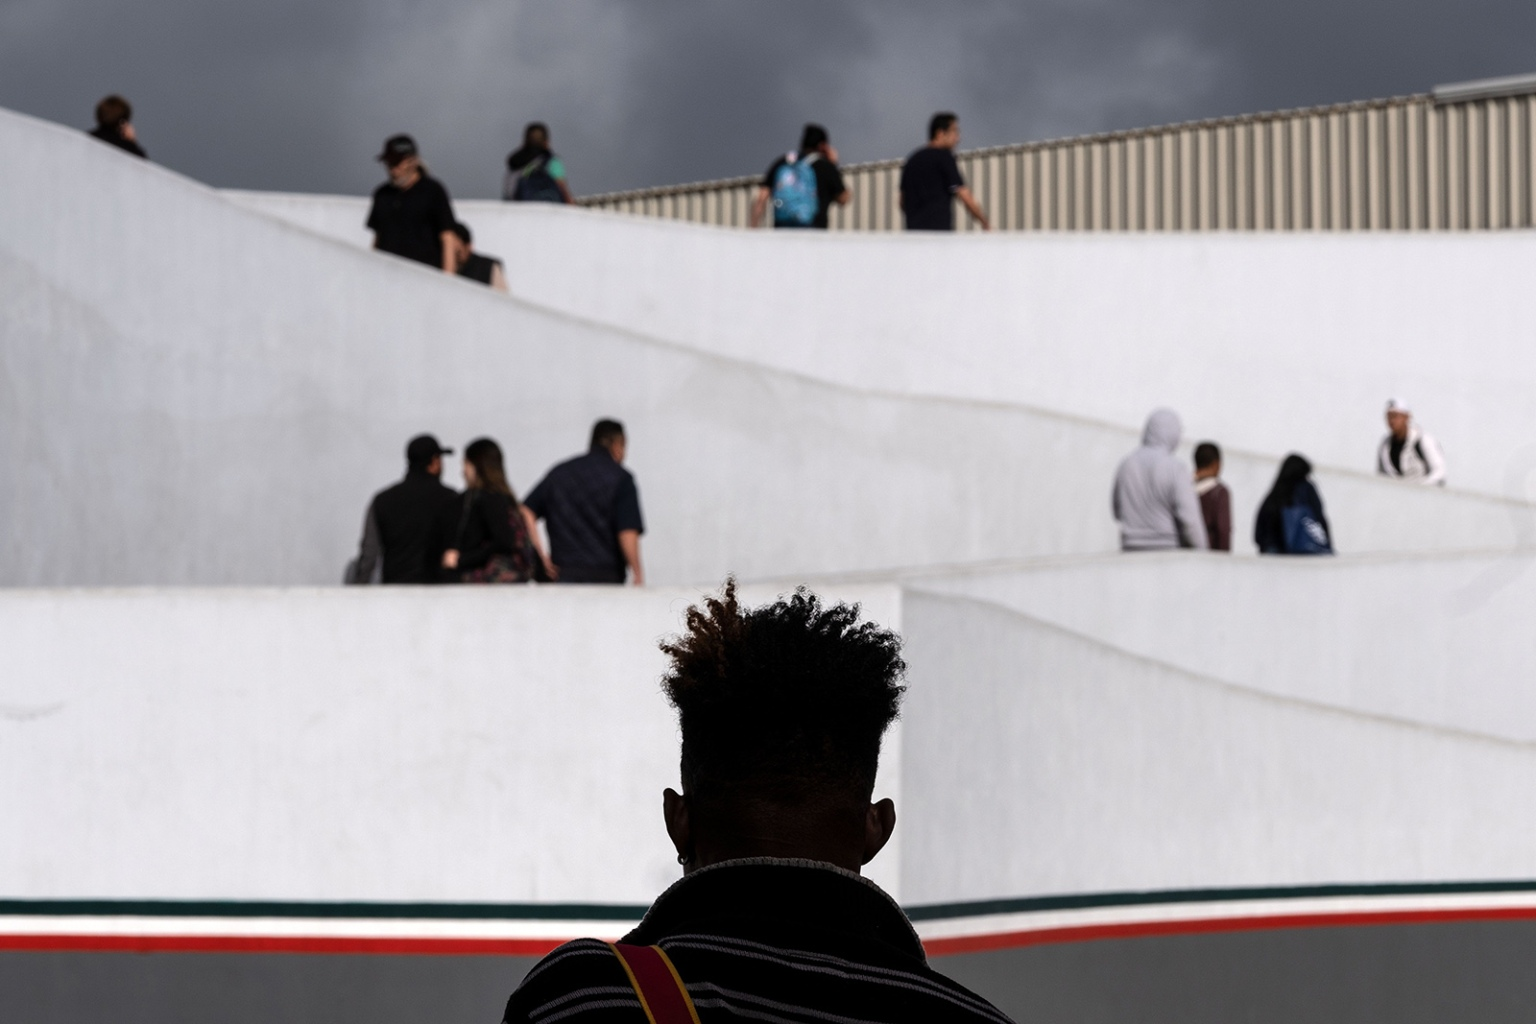 A migrant waits outside El Chaparral port of entry as he waits for his turn to request asylum before U.S. border authorities in Tijuana, Mexico, on April 9. GUILLERMO ARIAS/AFP/Getty Images